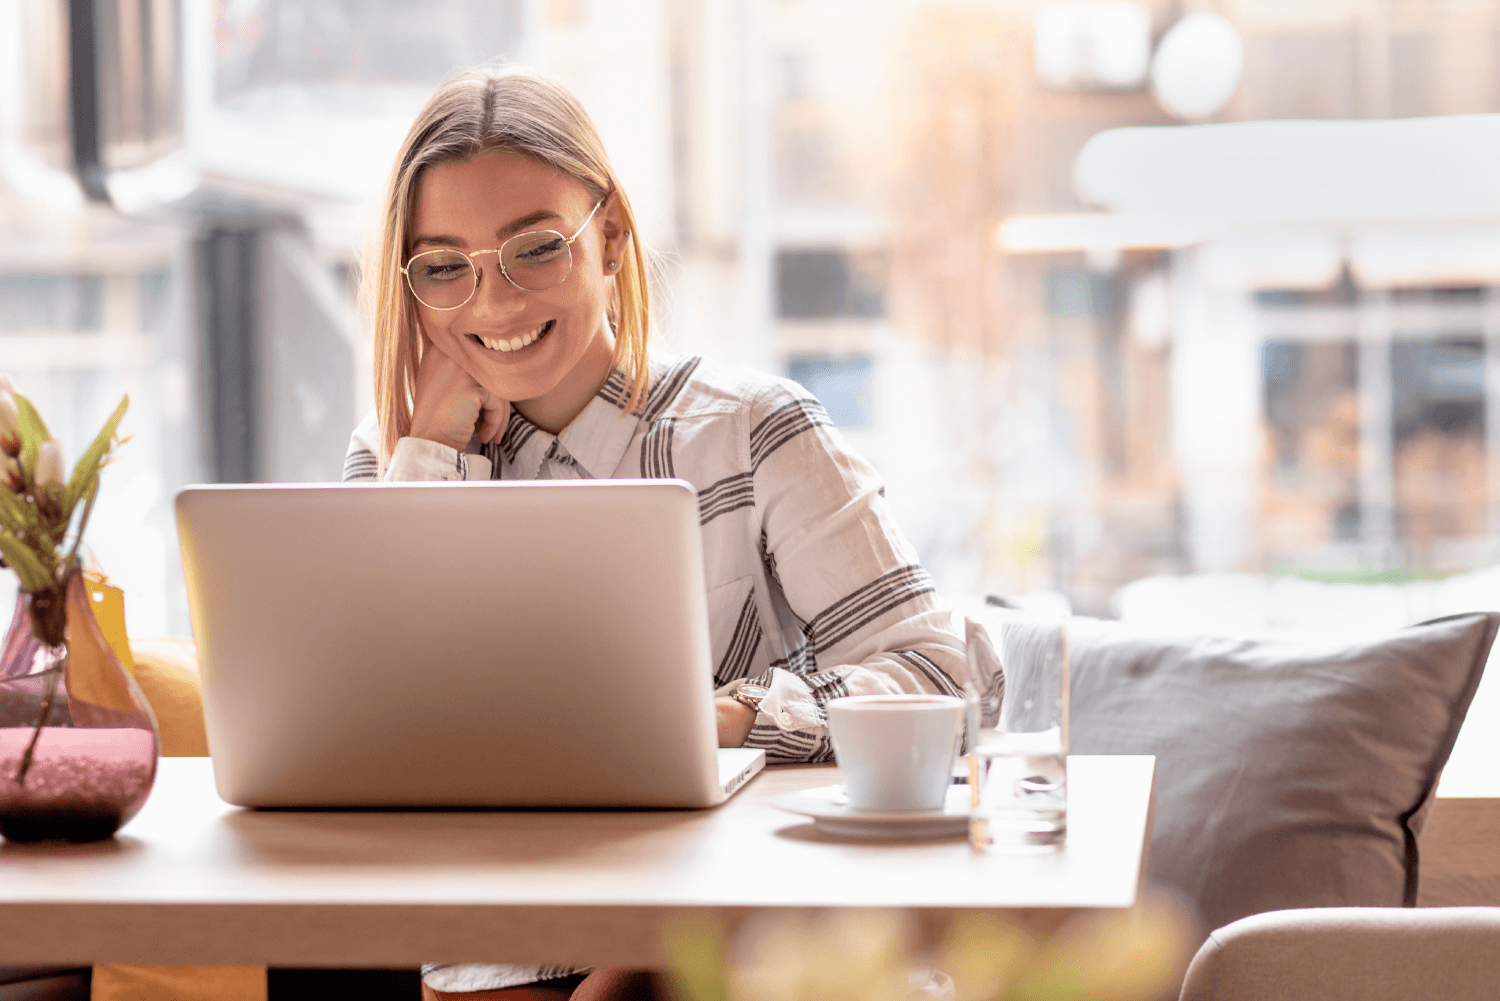 Five Tips for Remote Working Success